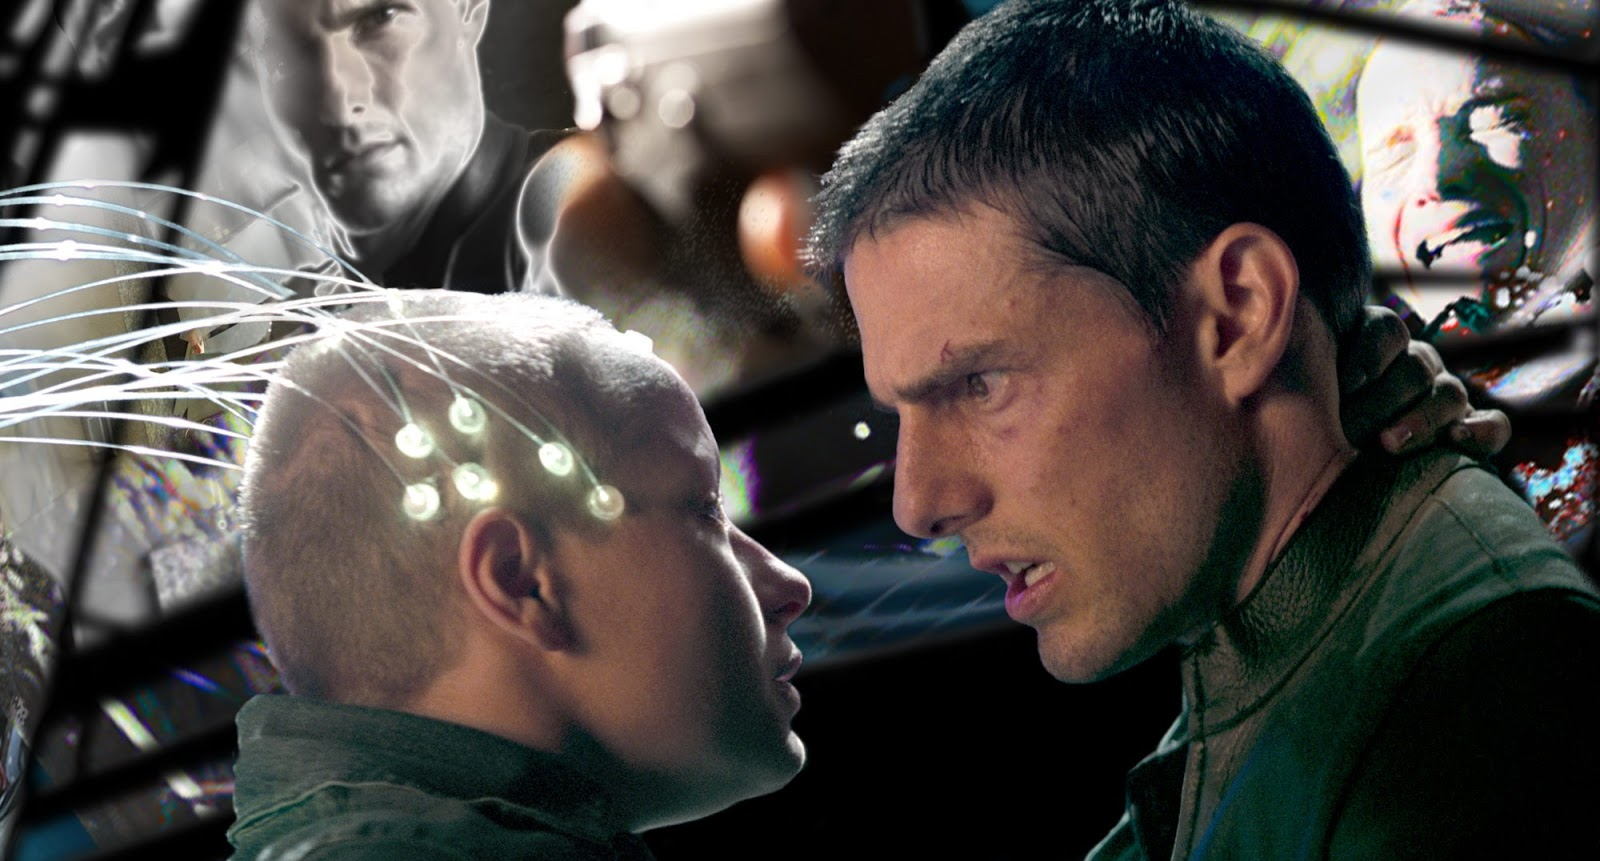 essay on the movie minority report Minority report is a good movie, exciting, thrilling, and mysterious at the same time its direction towards humanity and moral values is thought provoking, providing.